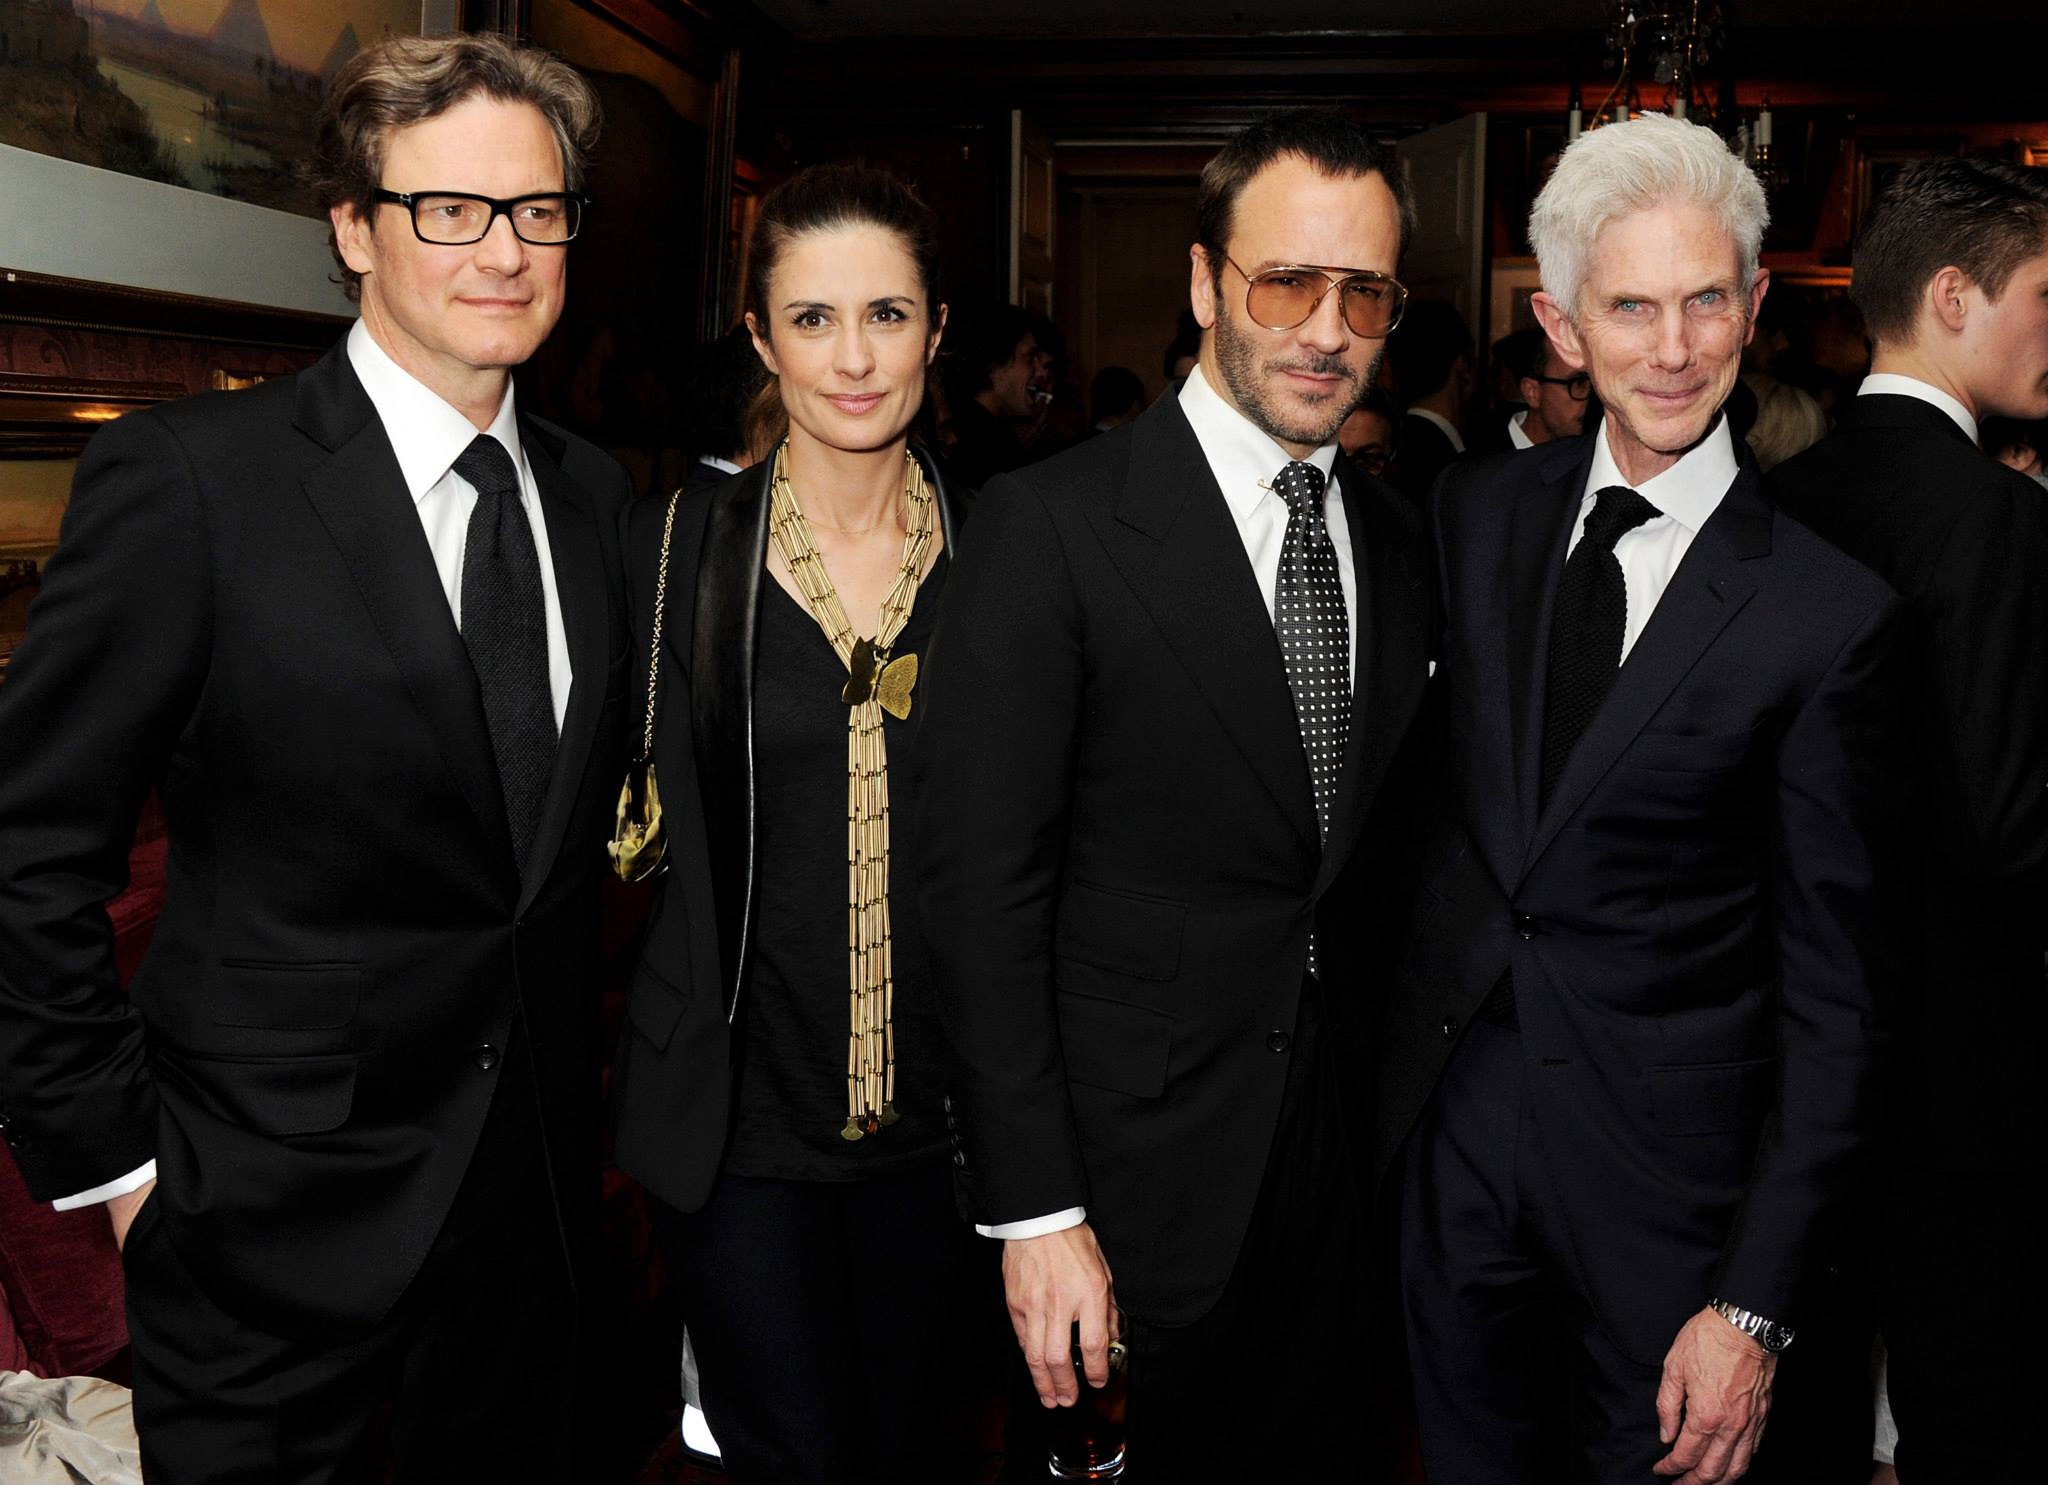 Tom Ford with Colin Firth, Livia Firth and Richard Buckley